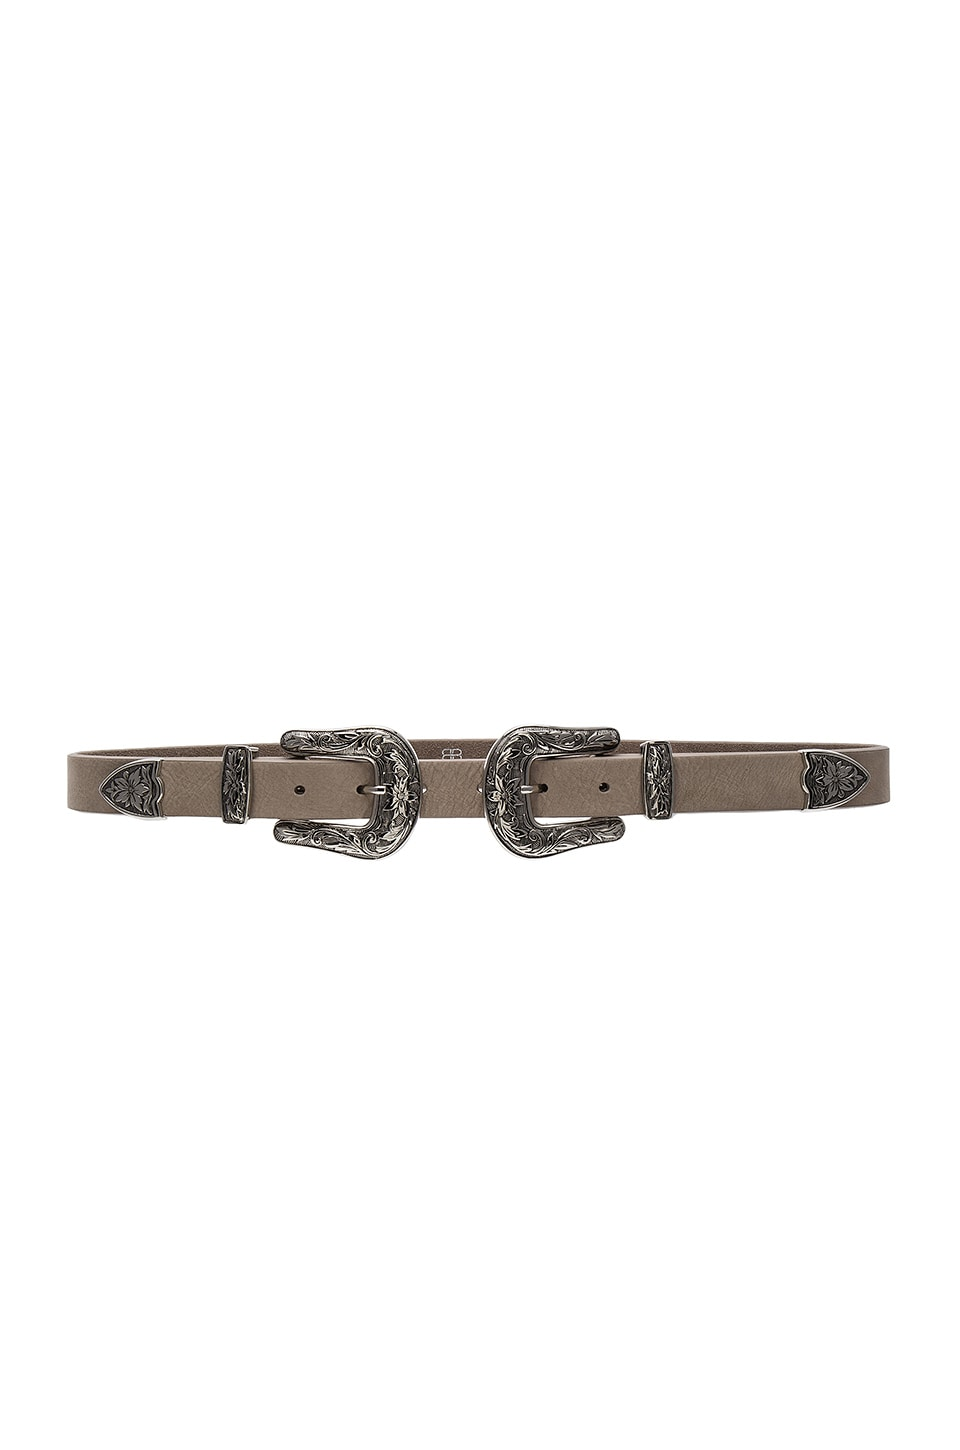 B-Low the Belt Baby Bri Bri Nubuck Belt in Light Taupe & Silver